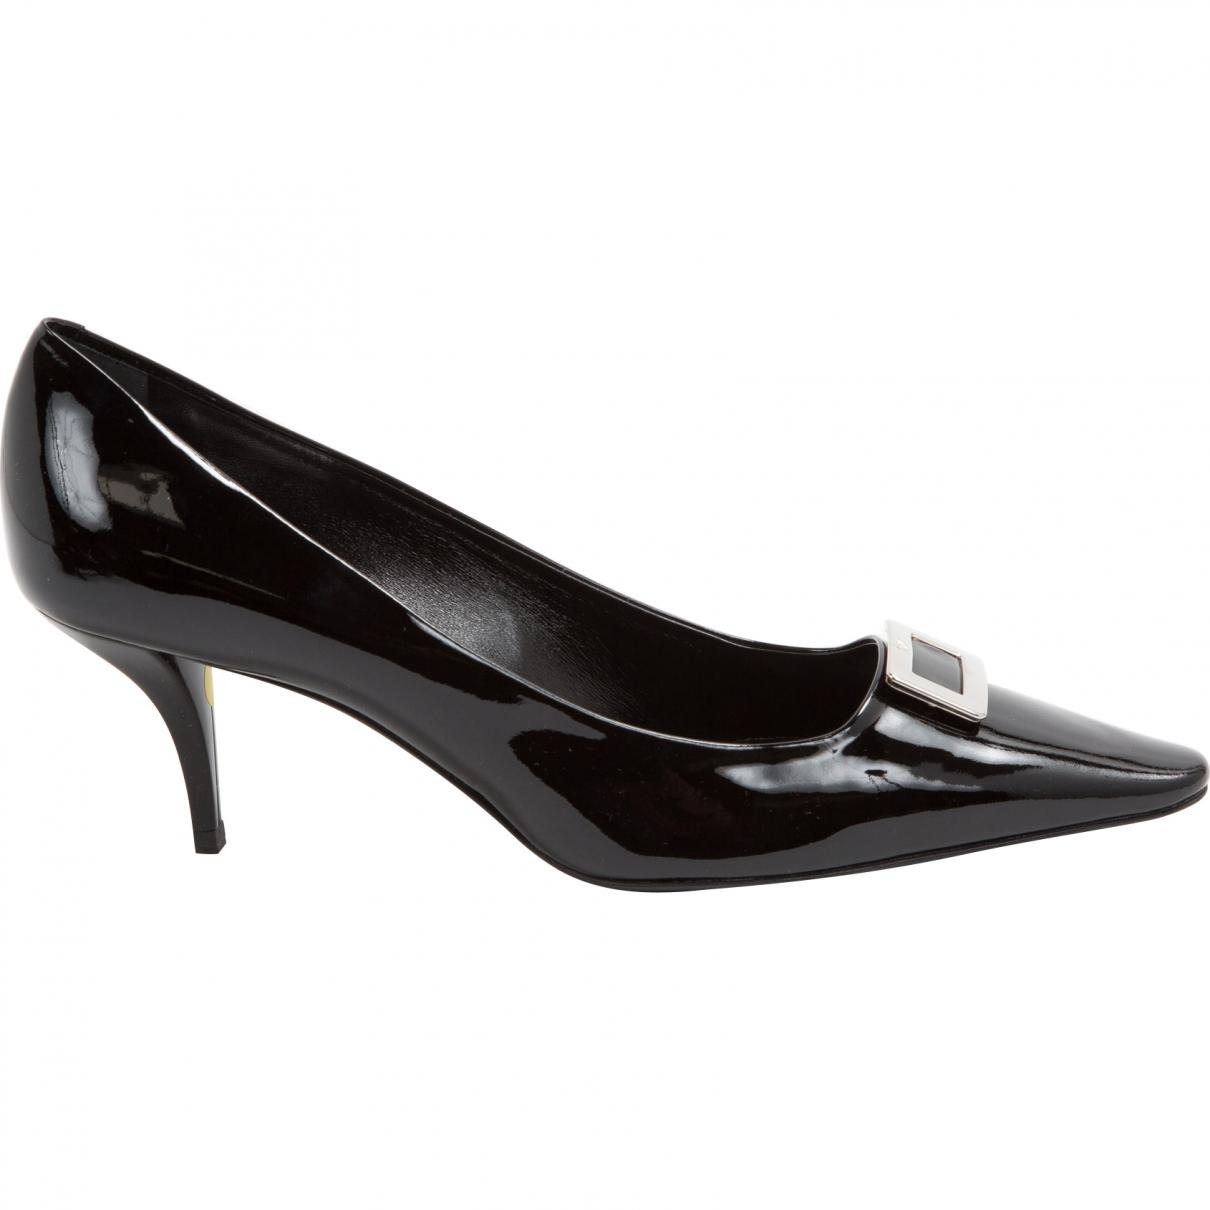 Pre-owned - PATENT LEATHER COURT SHOES Roger Vivier zK0J2